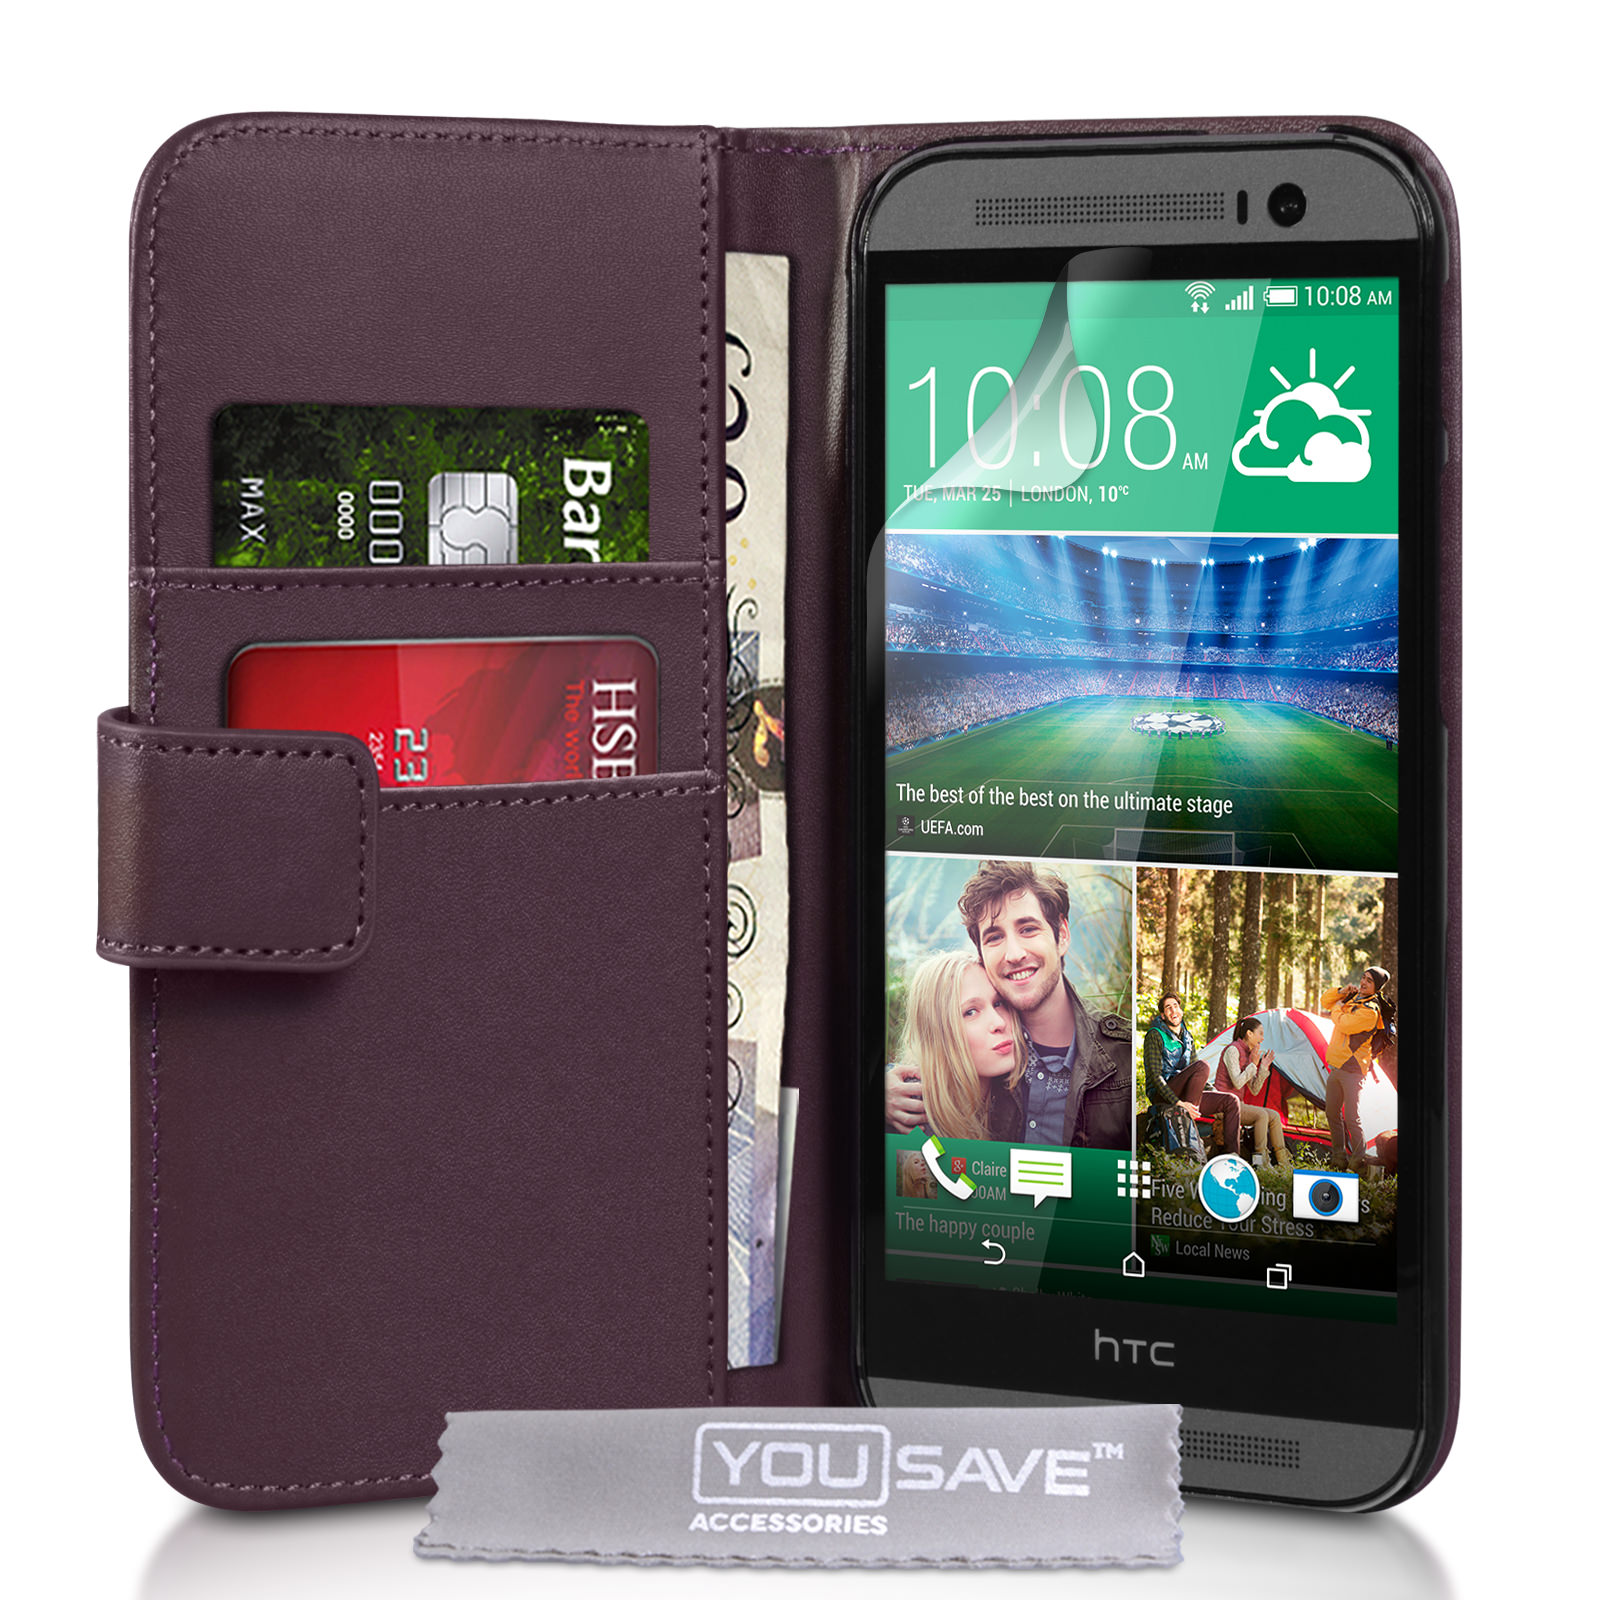 YouSave Accessories HTC One M8 Leather-Effect Wallet Case - Purple